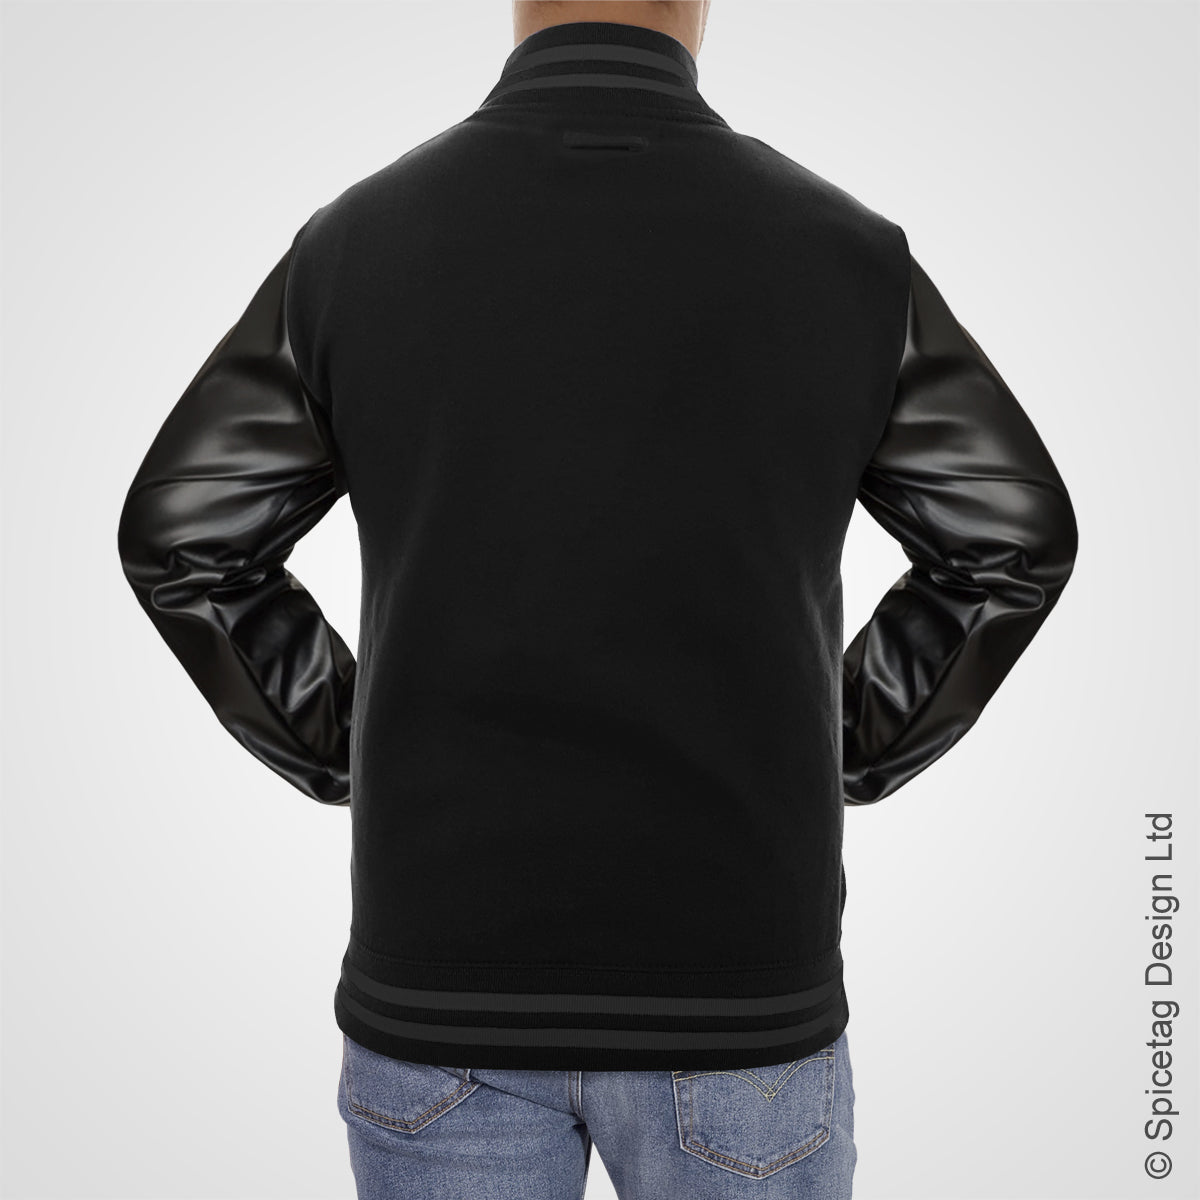 Black Varsity Jacket Faux Leather Sleeves College Top USA Letterman Coat Baseball Clothing Spicetag